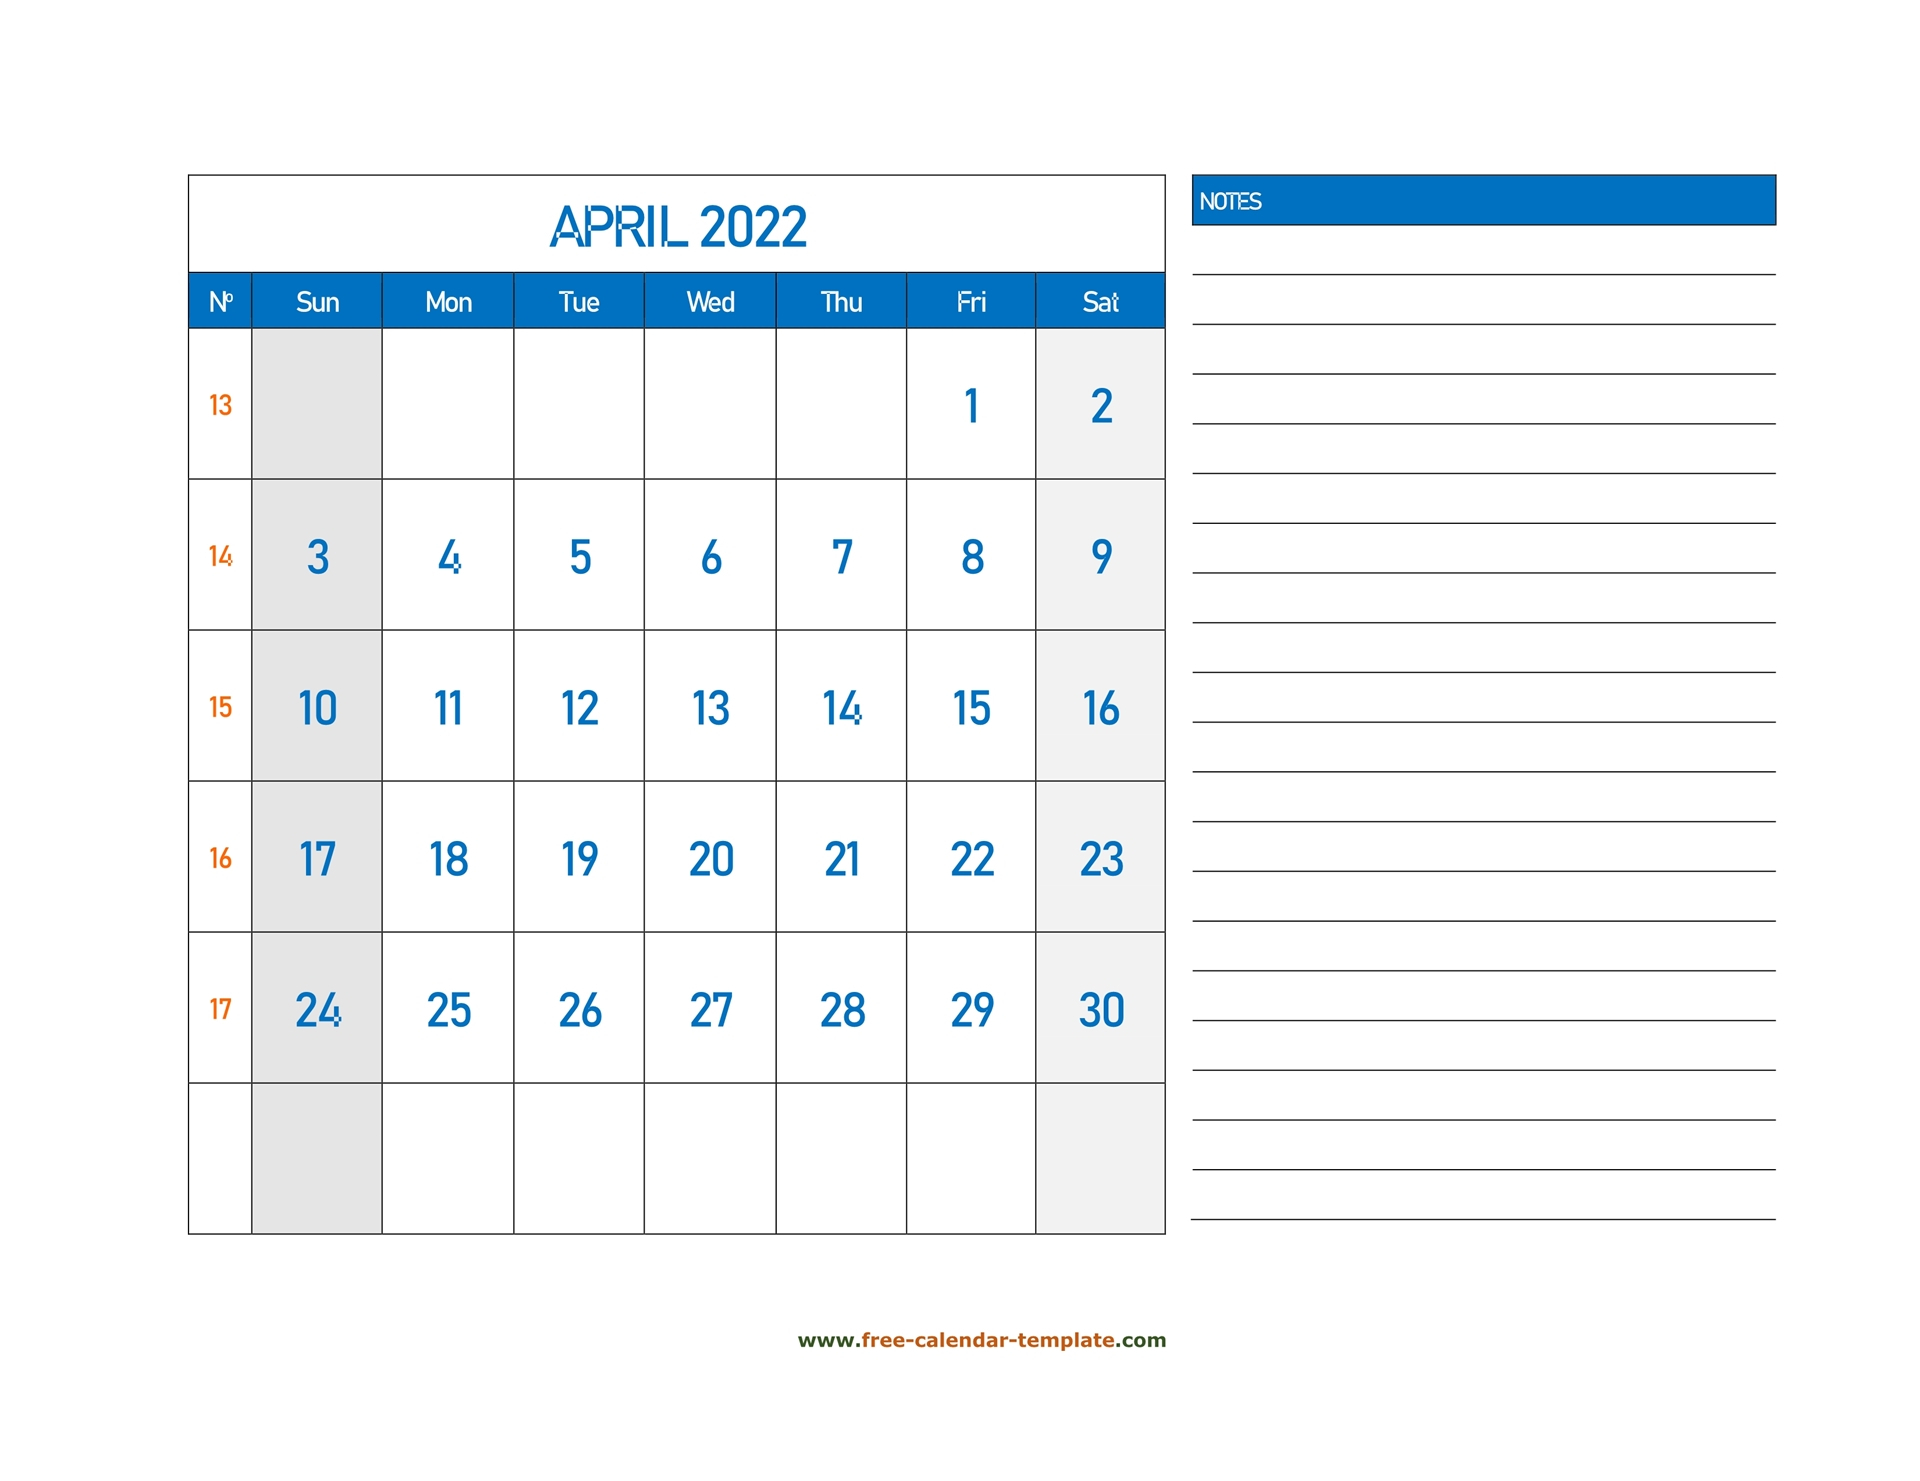 April Calendar 2022 Grid Lines For Holidays And Notes